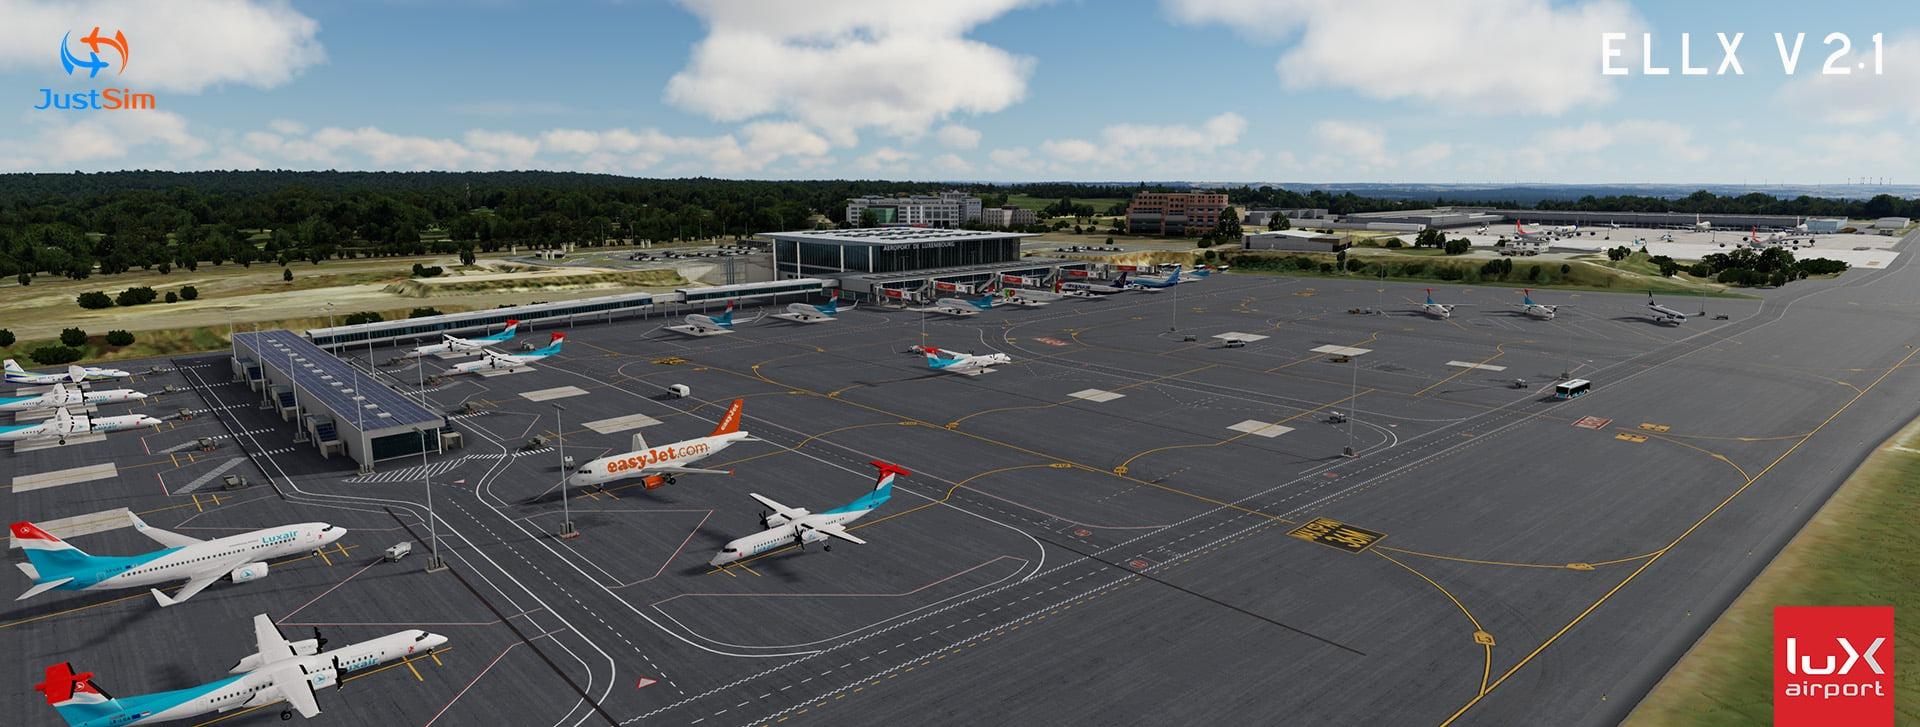 justsim-Luxembourg-Airport-2-2 JustSim Announces and Previews Luxembourg Airport (ELLX) 2.1 for Prepar3D v5